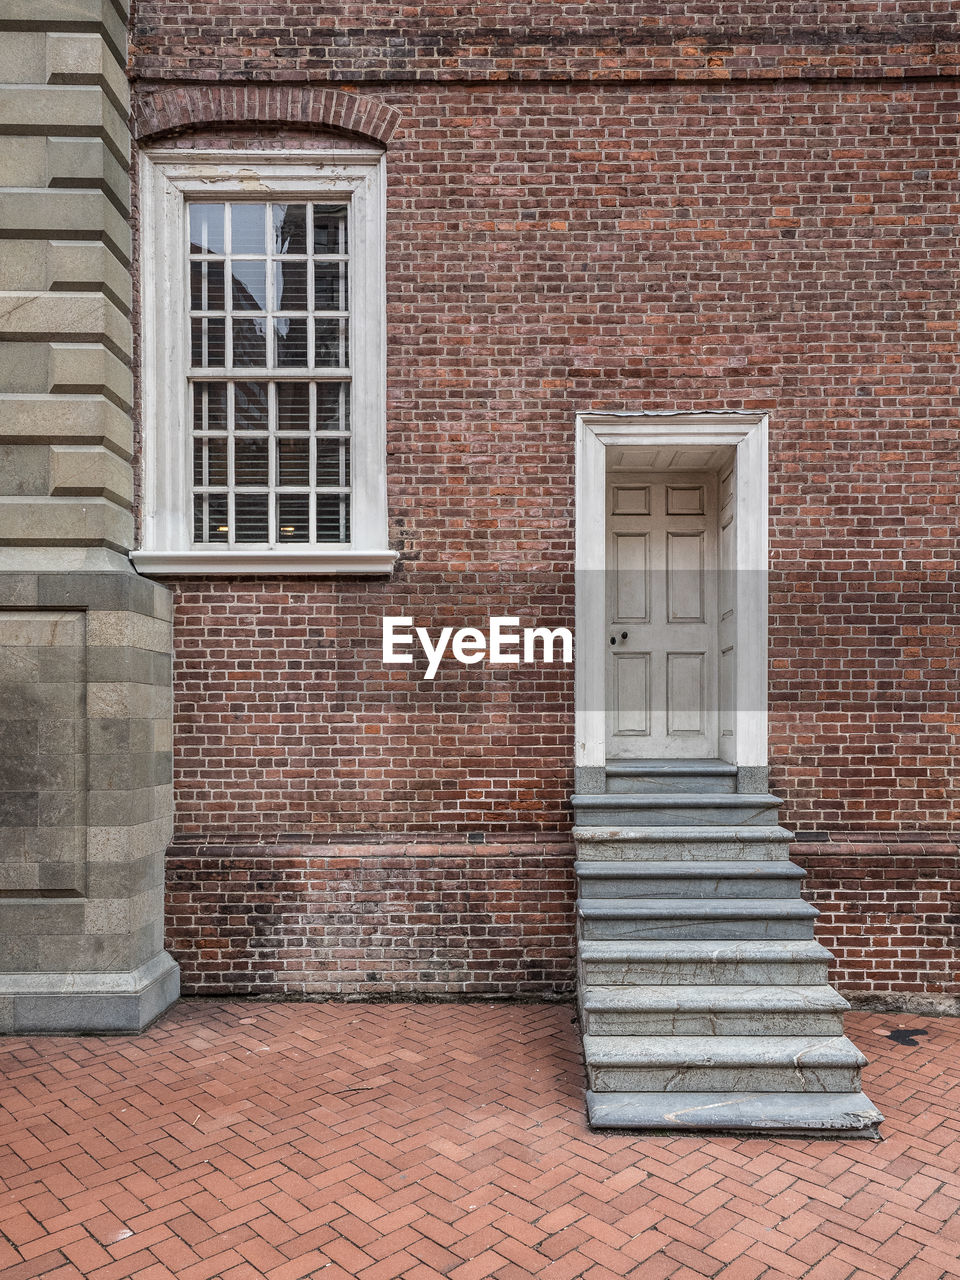 architecture, building exterior, brick, brick wall, built structure, window, door, steps, no people, outdoors, day